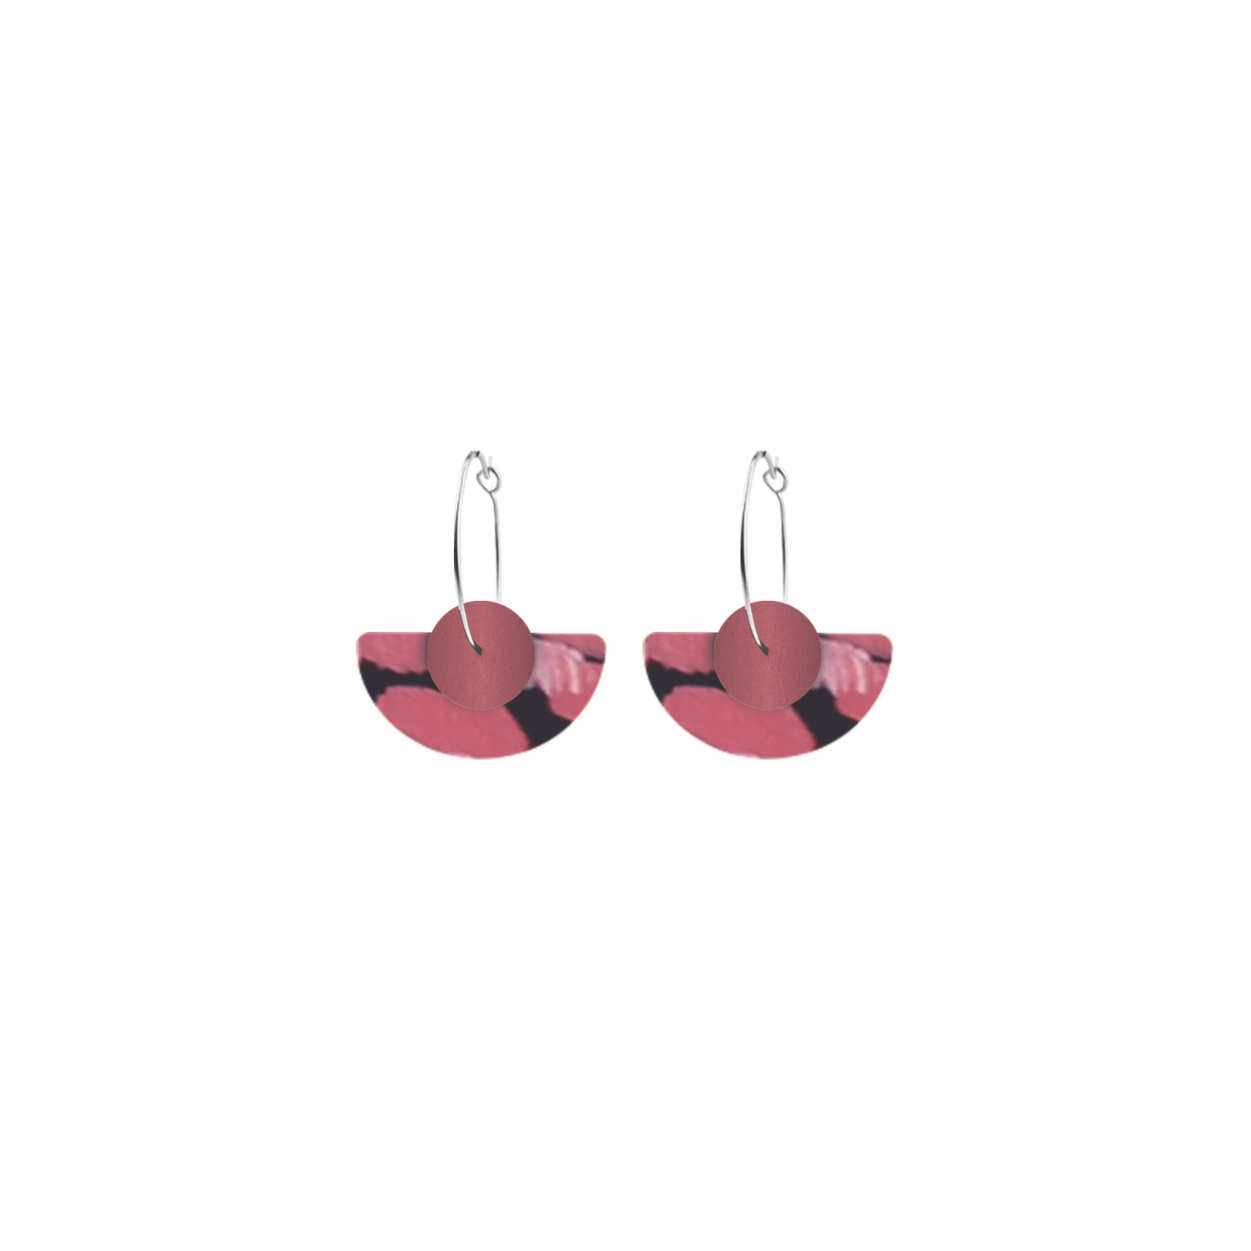 Moe Moe Design Dreaming Miiimi and Jiinda Layered Medium Moon Hoop Earrings